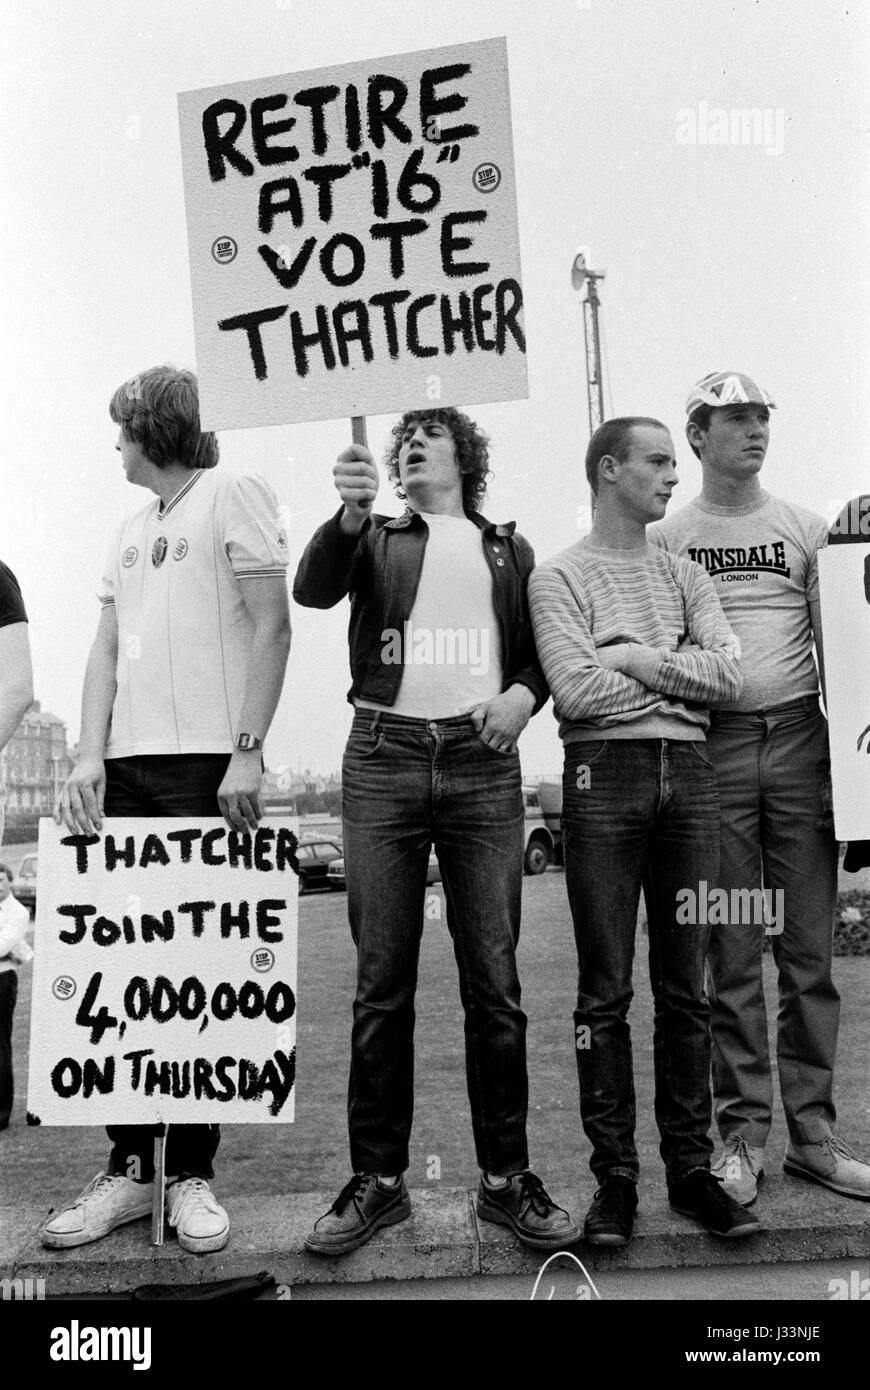 General Election 1983 Uk Thatcher unemployment demonstration about job prospective for school leavers 1980s HOMER - Stock Image